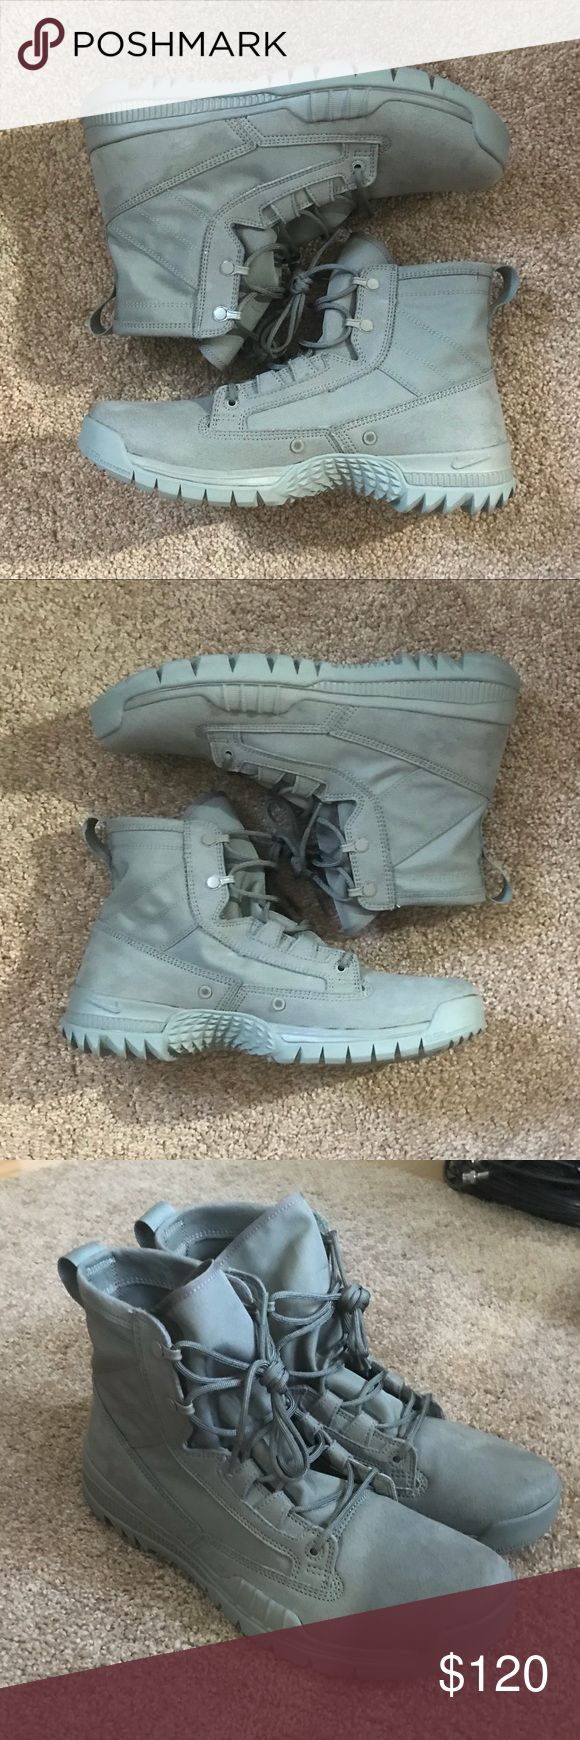 Nike SFB Army Green 631360-220 Special Forces Selling a Brand New pair of Nike Special Forces Boot SFB Shoes in Army Green Color! These are awesome!  No box Mens US 10 // UK 9 // EU 44 Nike ID 631360-220 Nike Shoes Sneakers